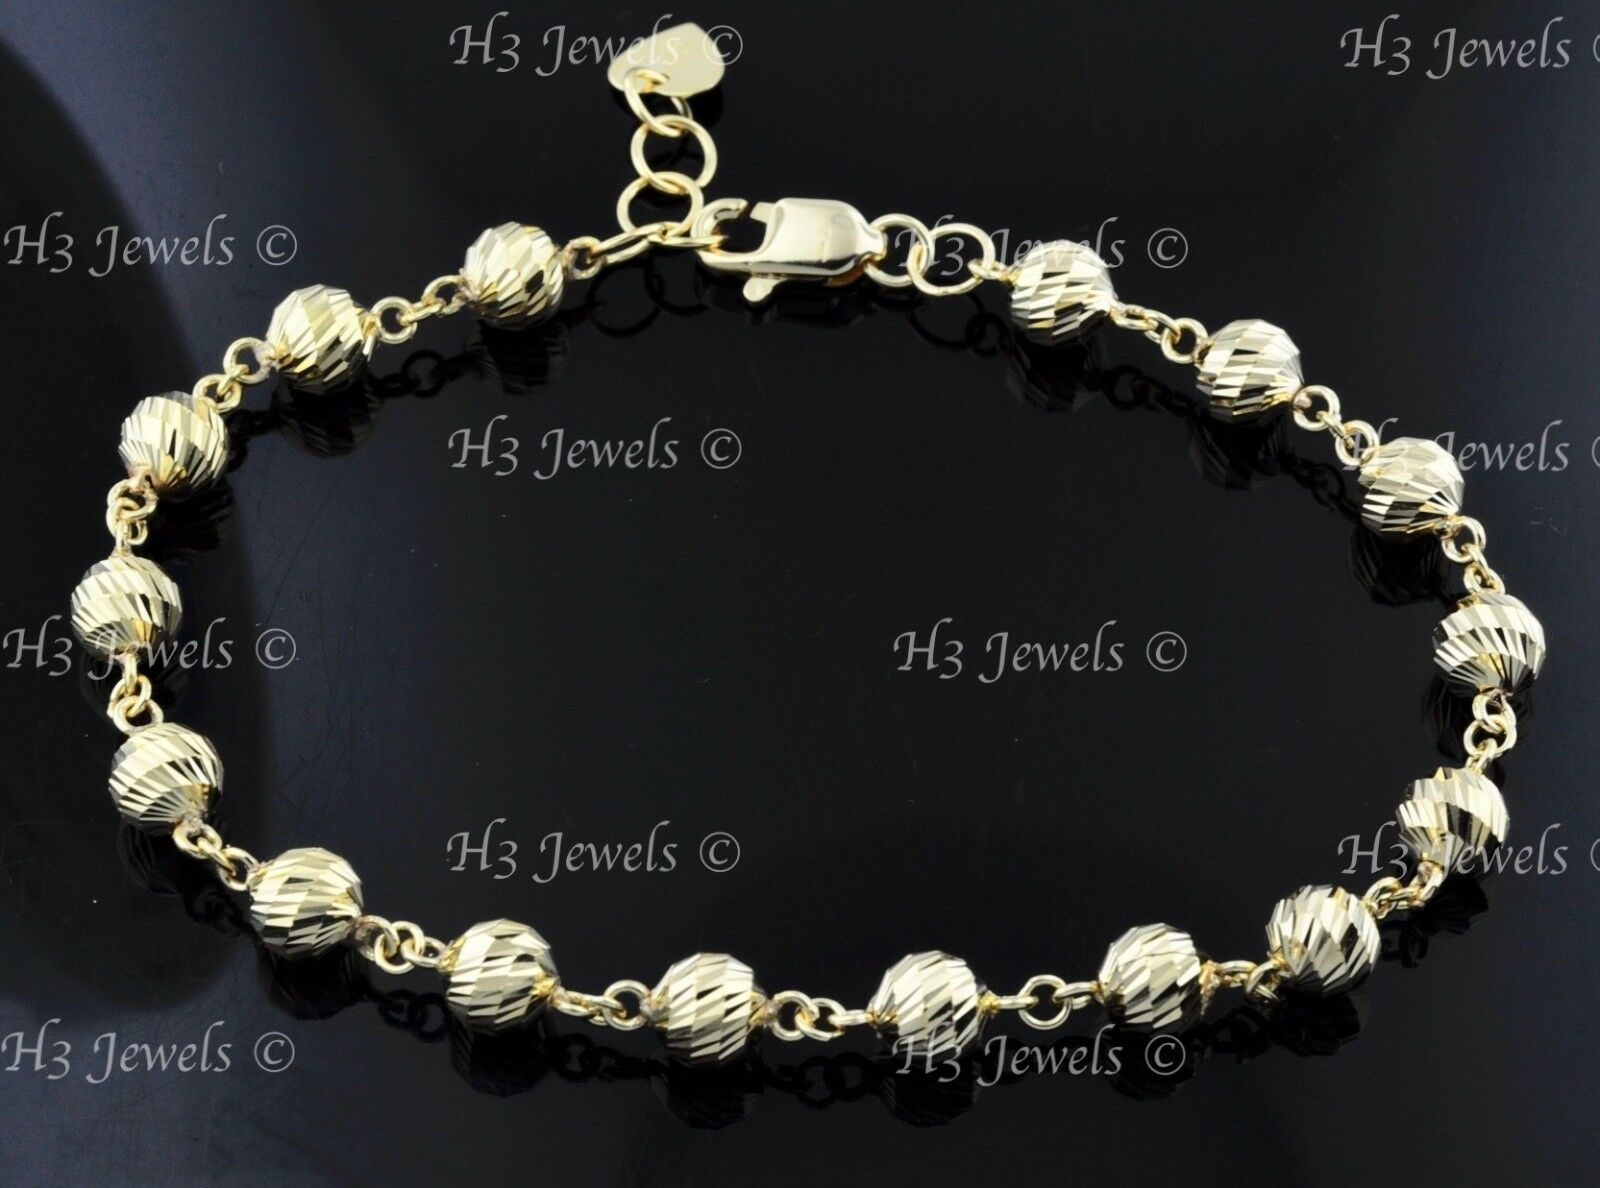 b4d0234f10fc8 bracelet ball bead cut diamond yellow Solid 18k 7.90 gold h3jewels ...